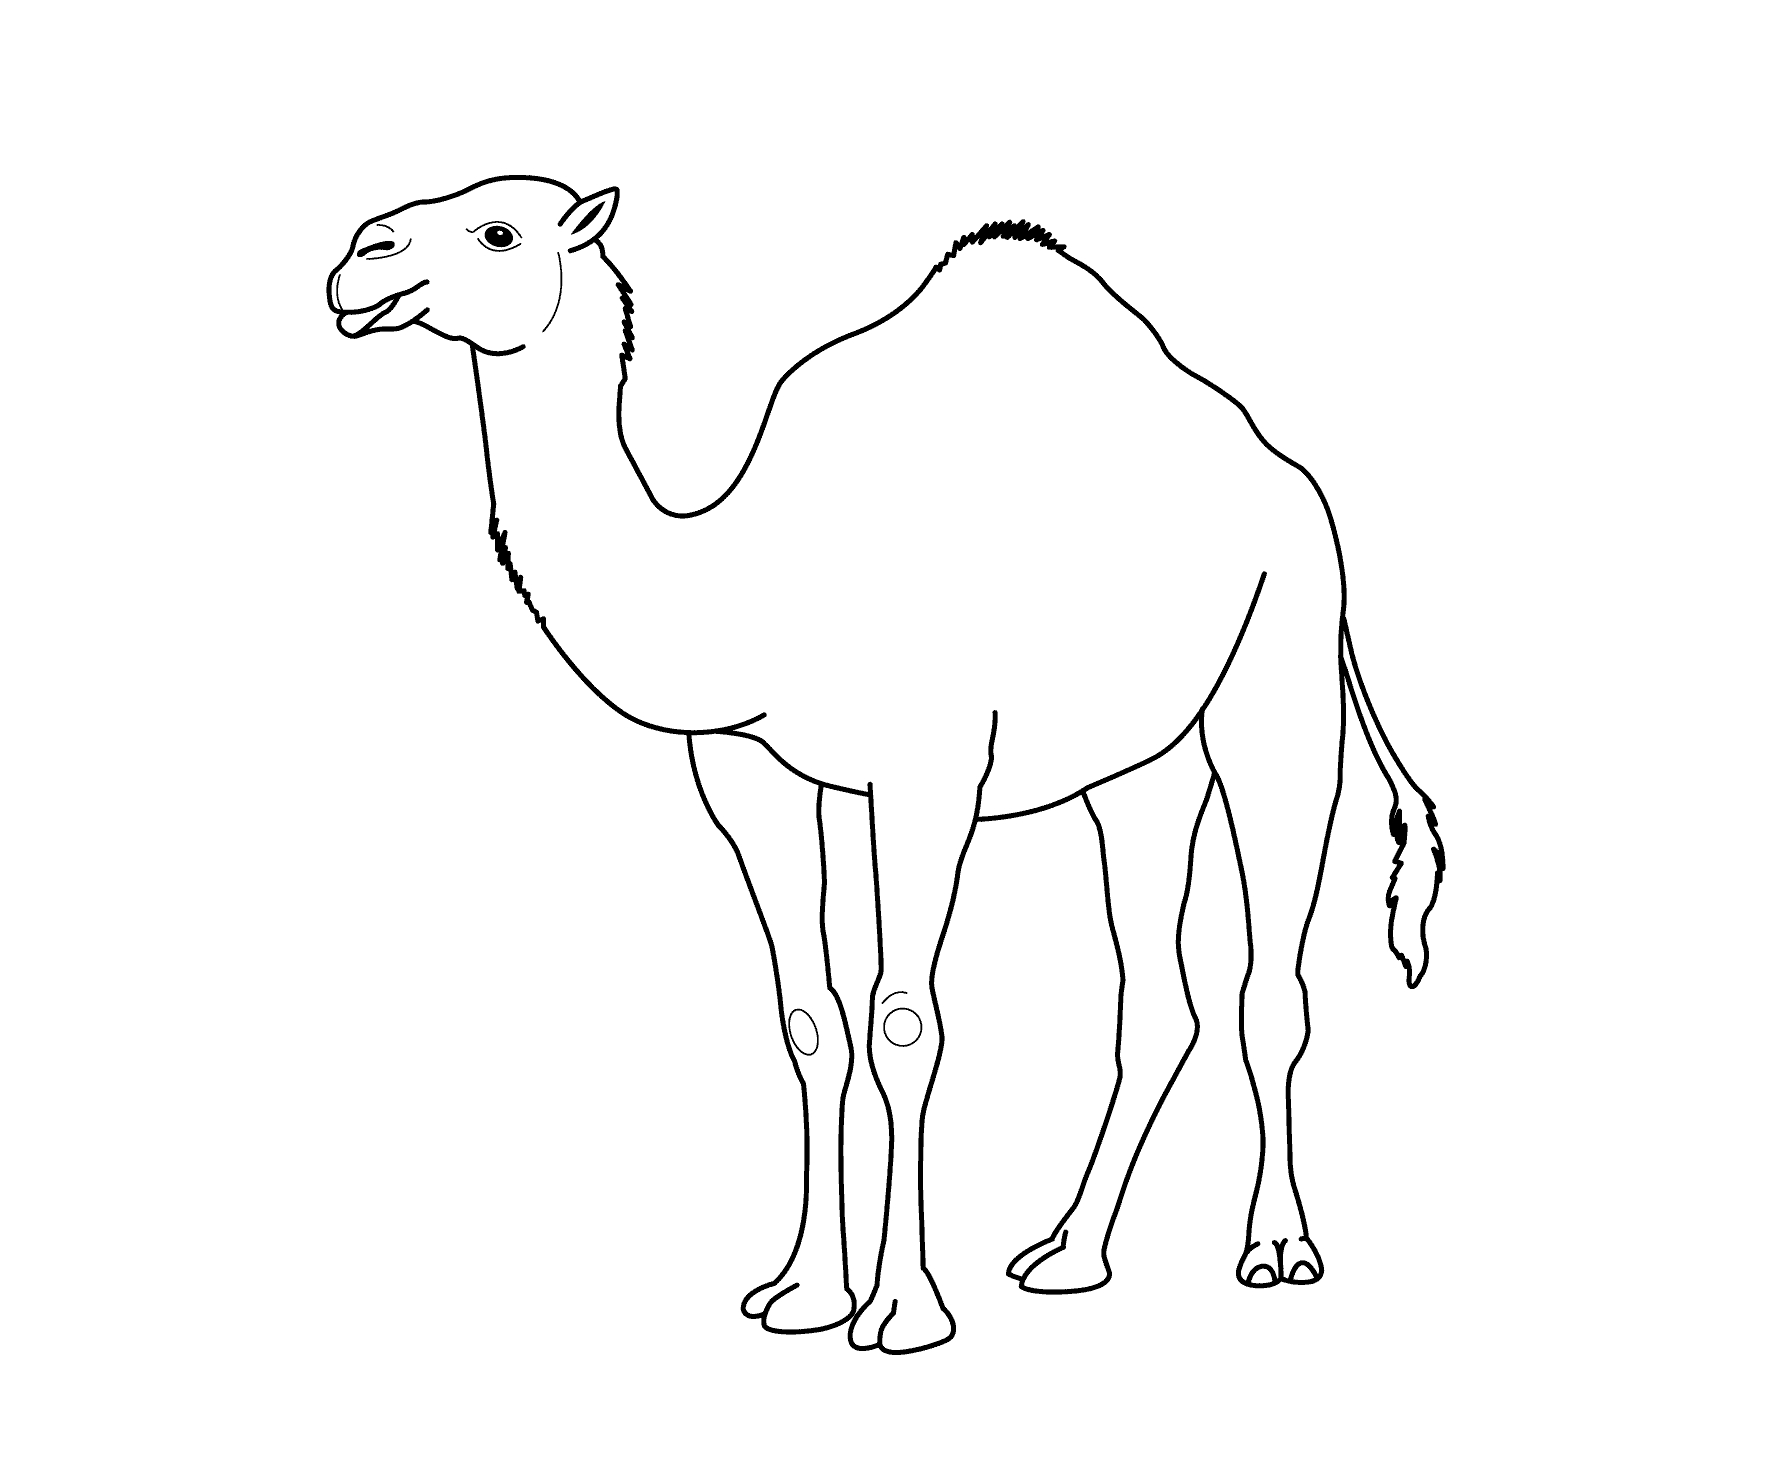 Coloring pages pencil and. Camel clipart colouring page